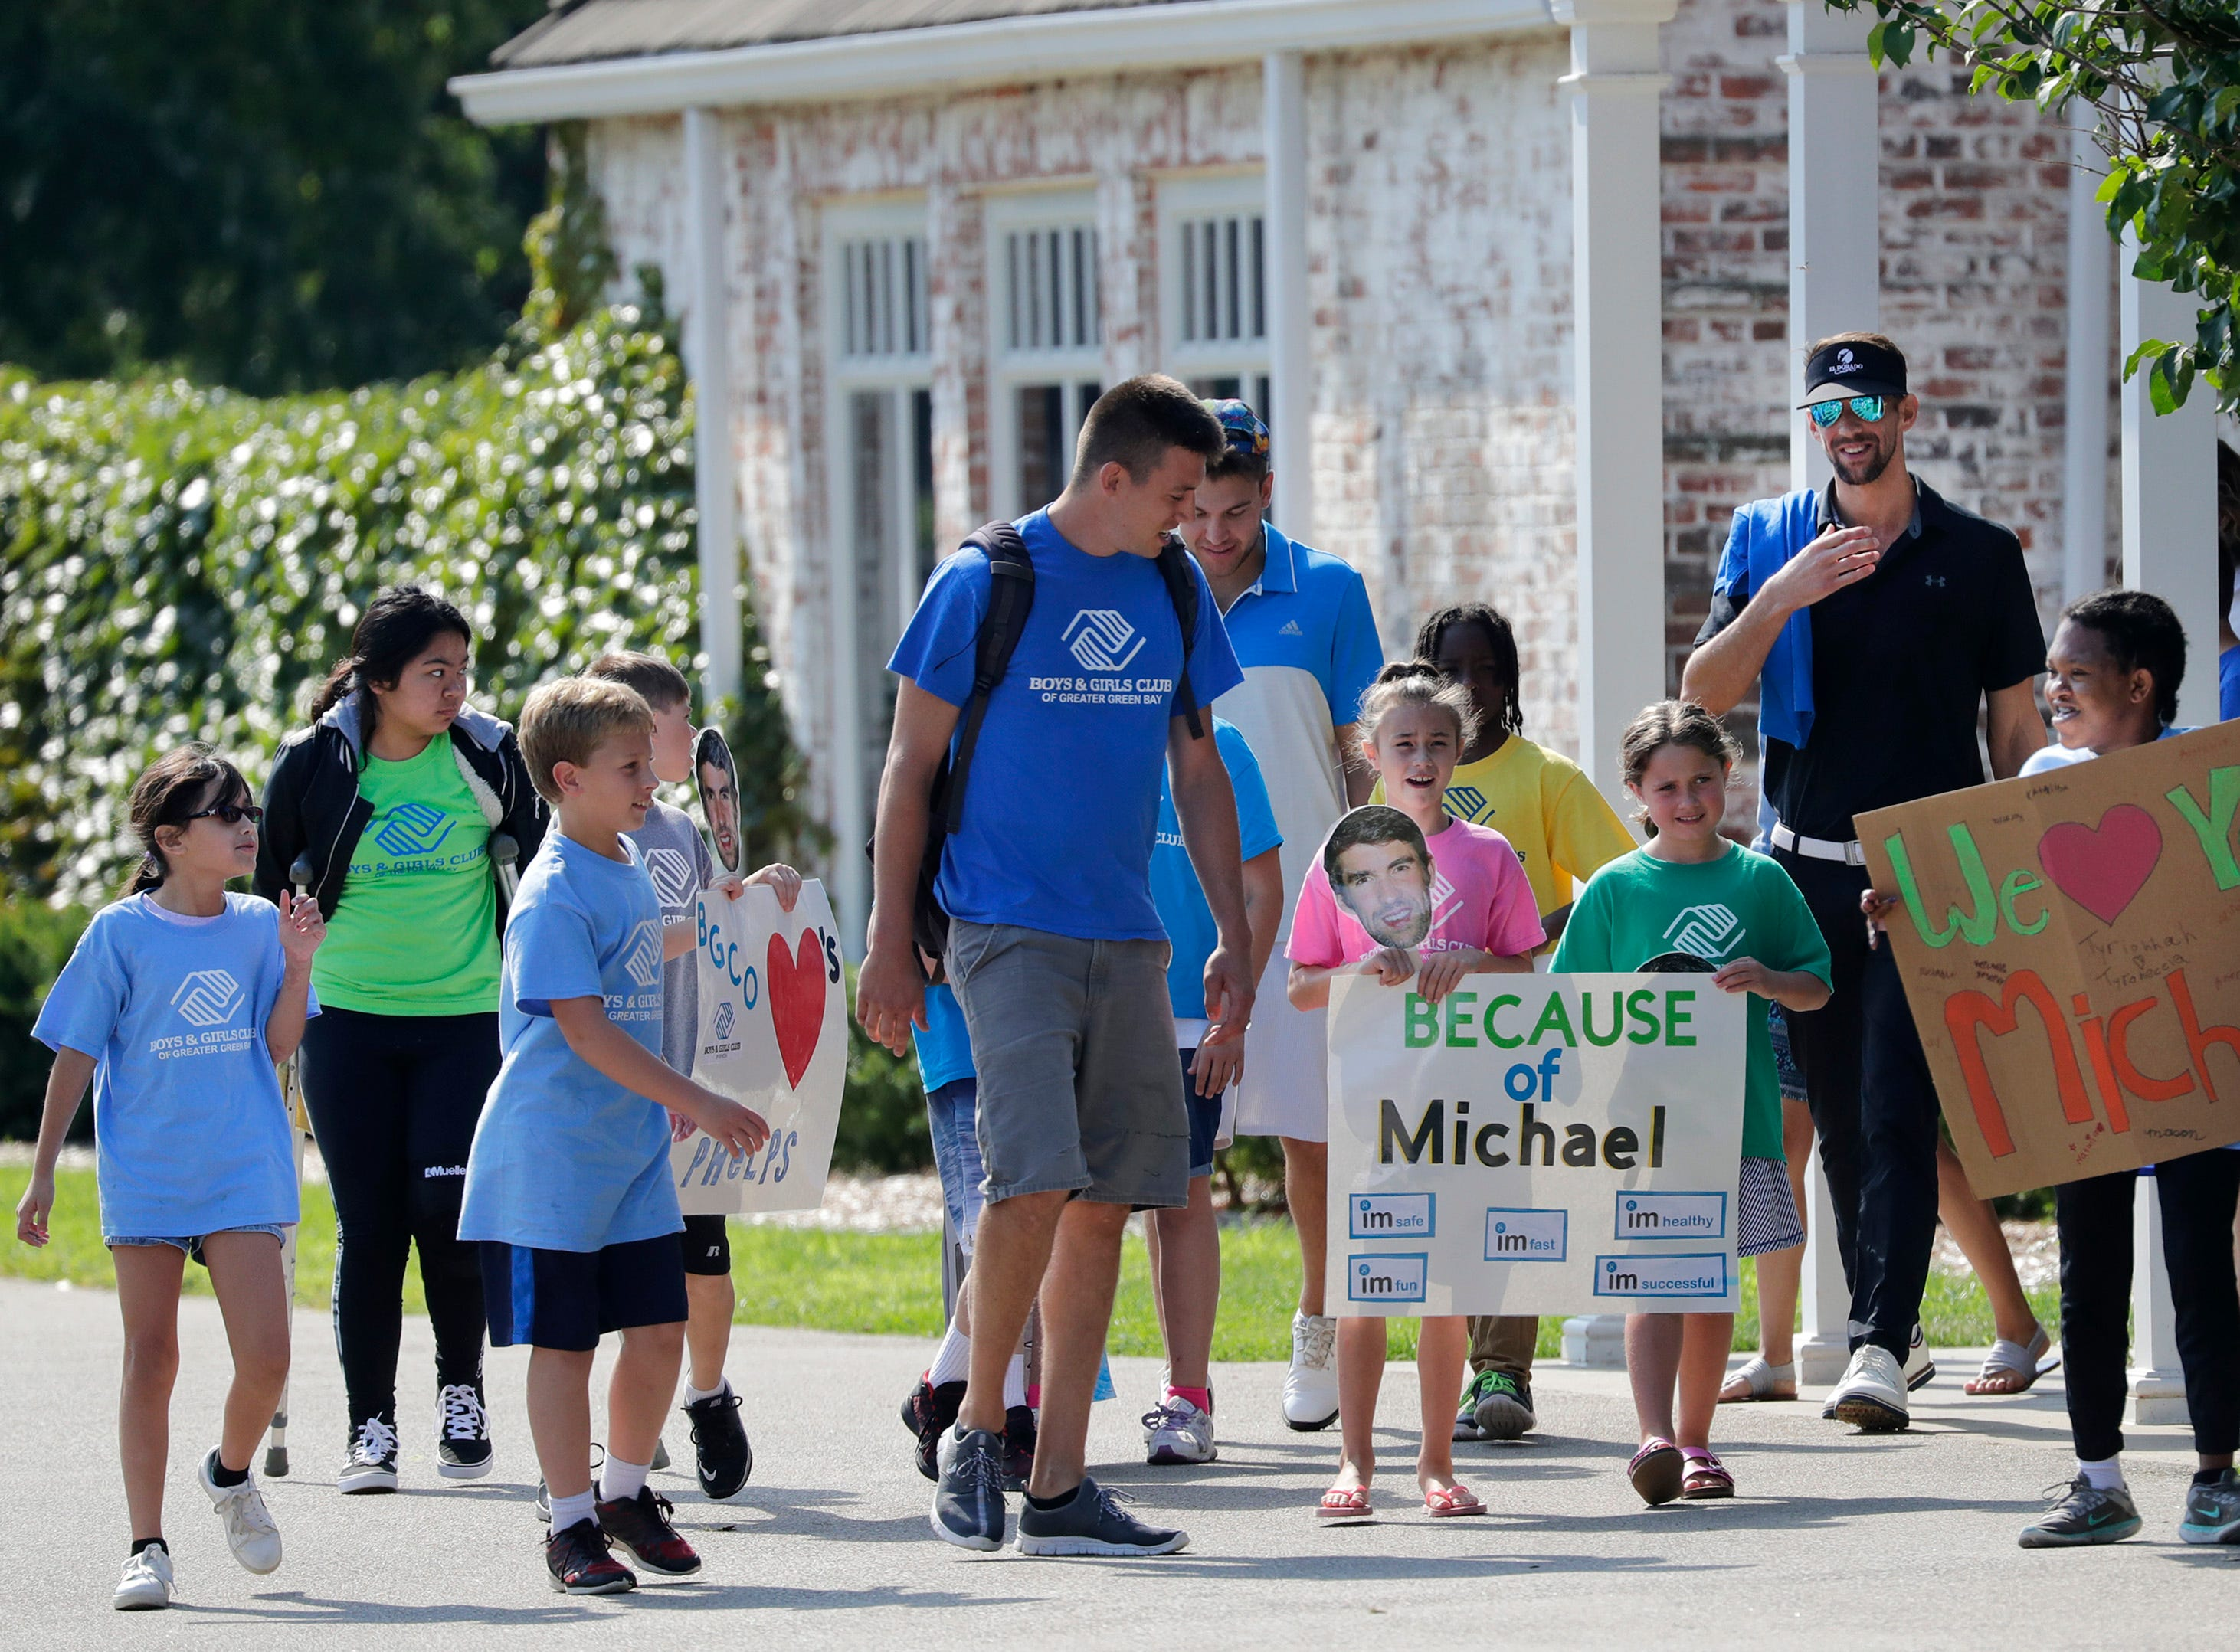 Michael Phelps, right, walks out with members of the Boys and Girls Club before the start of the U.S. Venture Open Wednesday, Aug. 8, 2018, at North Shore Golf Club in Menasha, Wis.Danny Damiani/USA TODAY NETWORK-Wisconsin